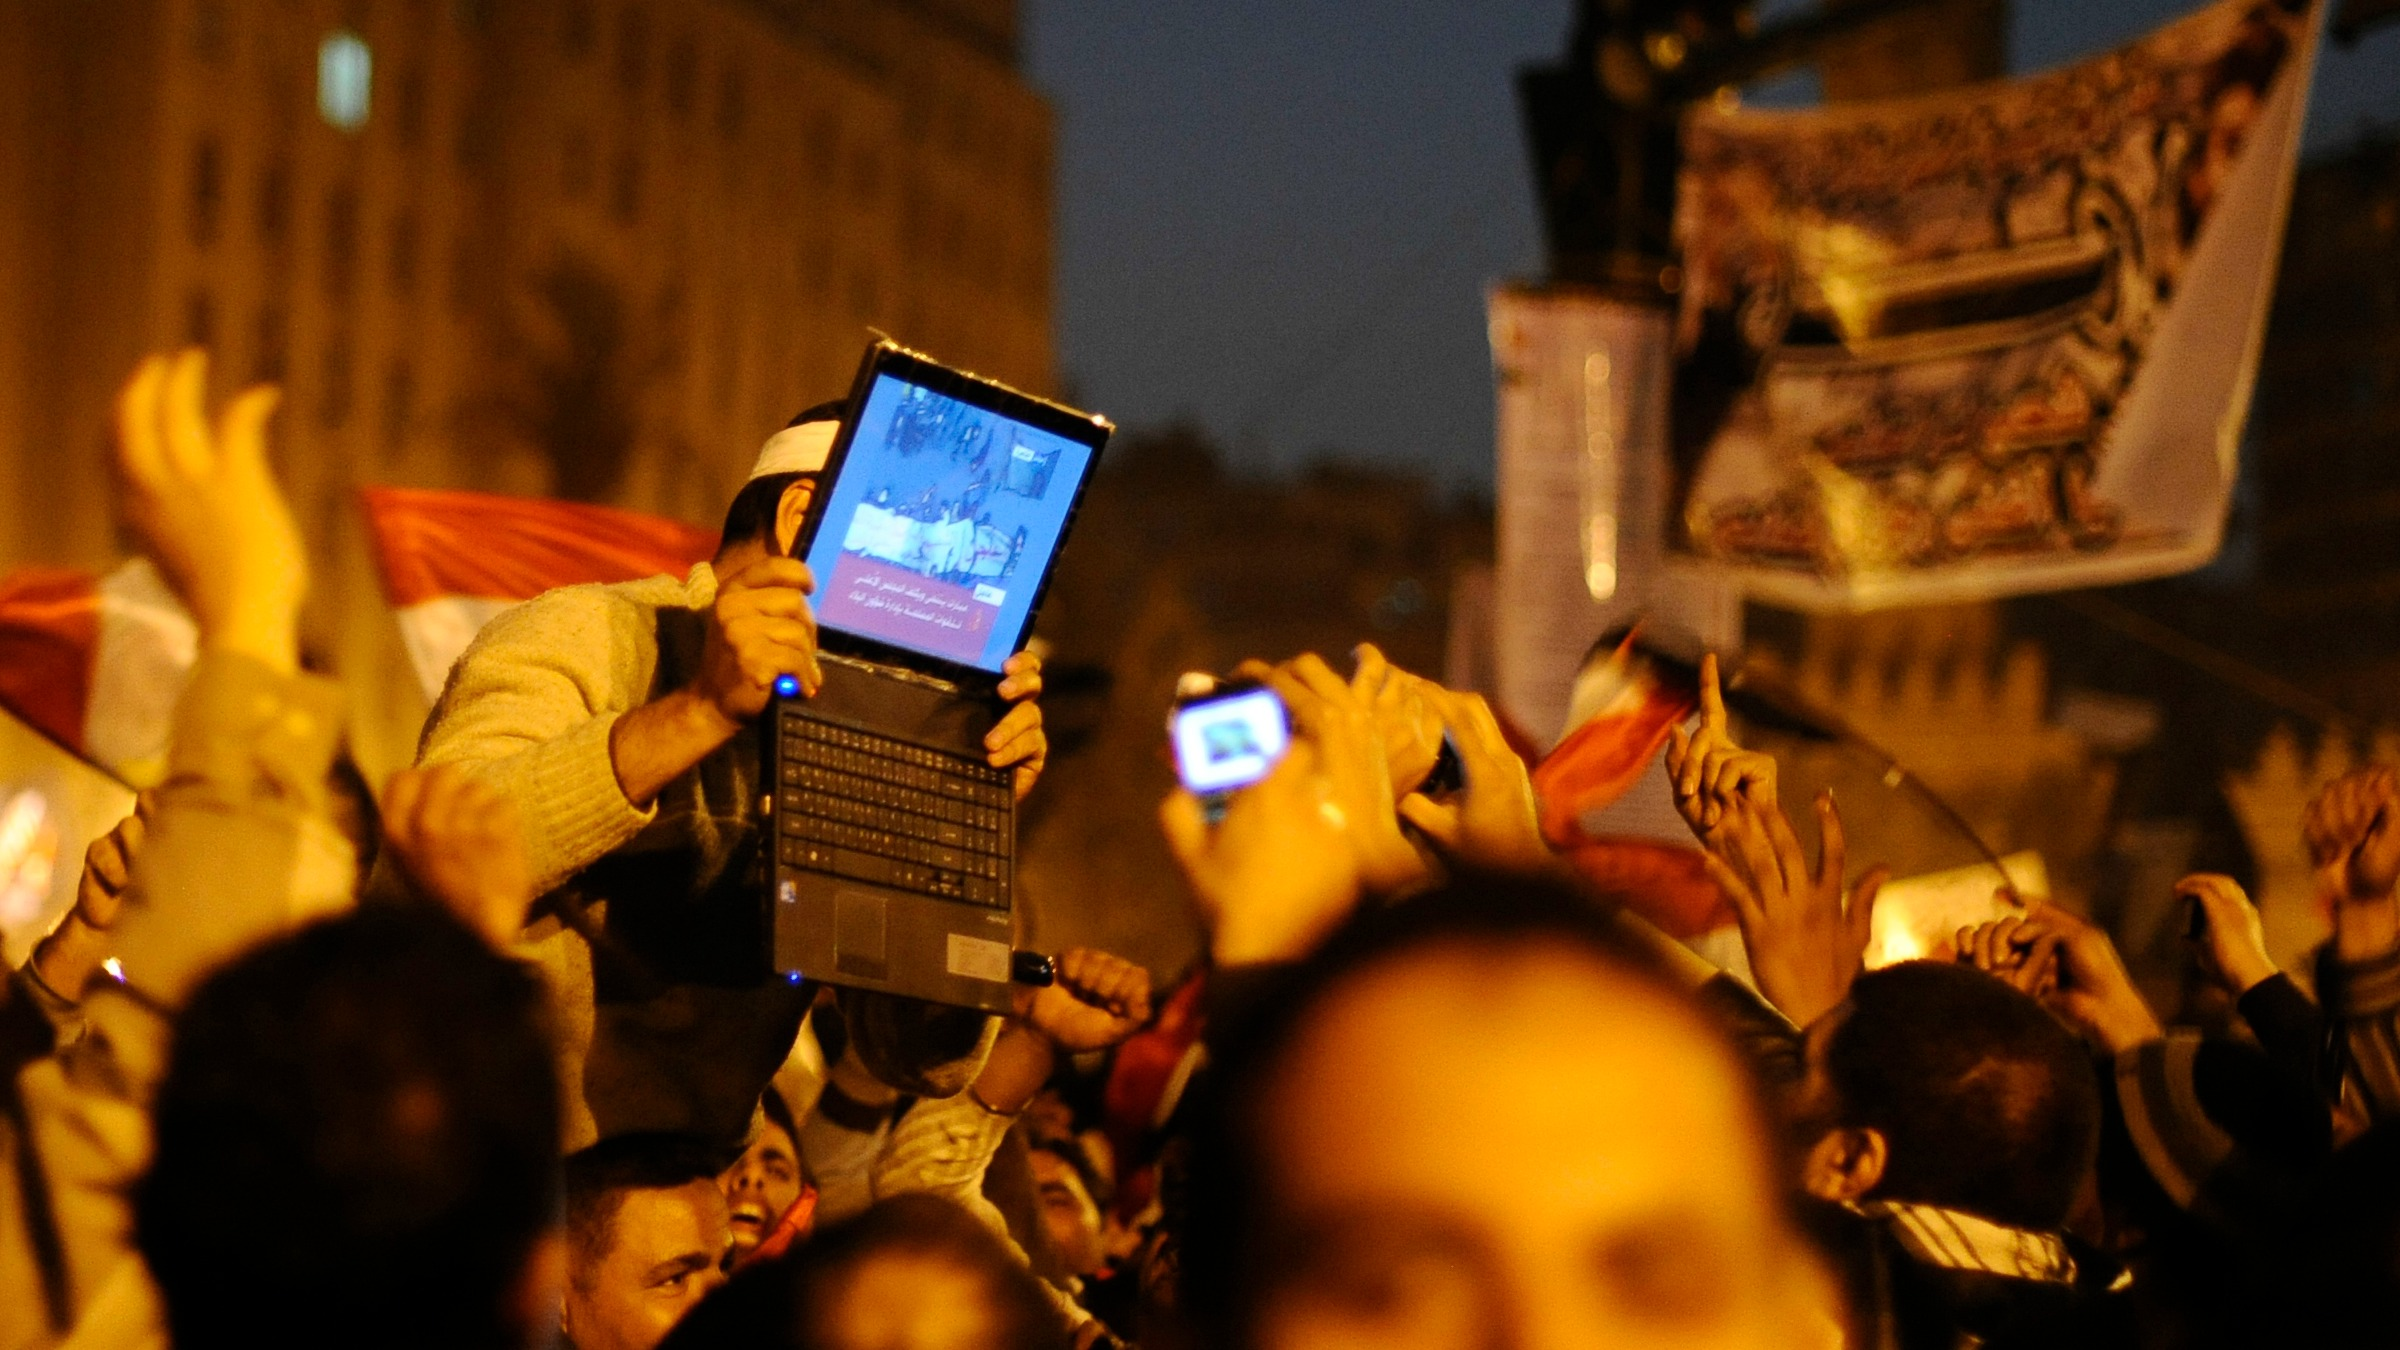 Technology played a major part in the uprisings in Egypt and other Arab countries.